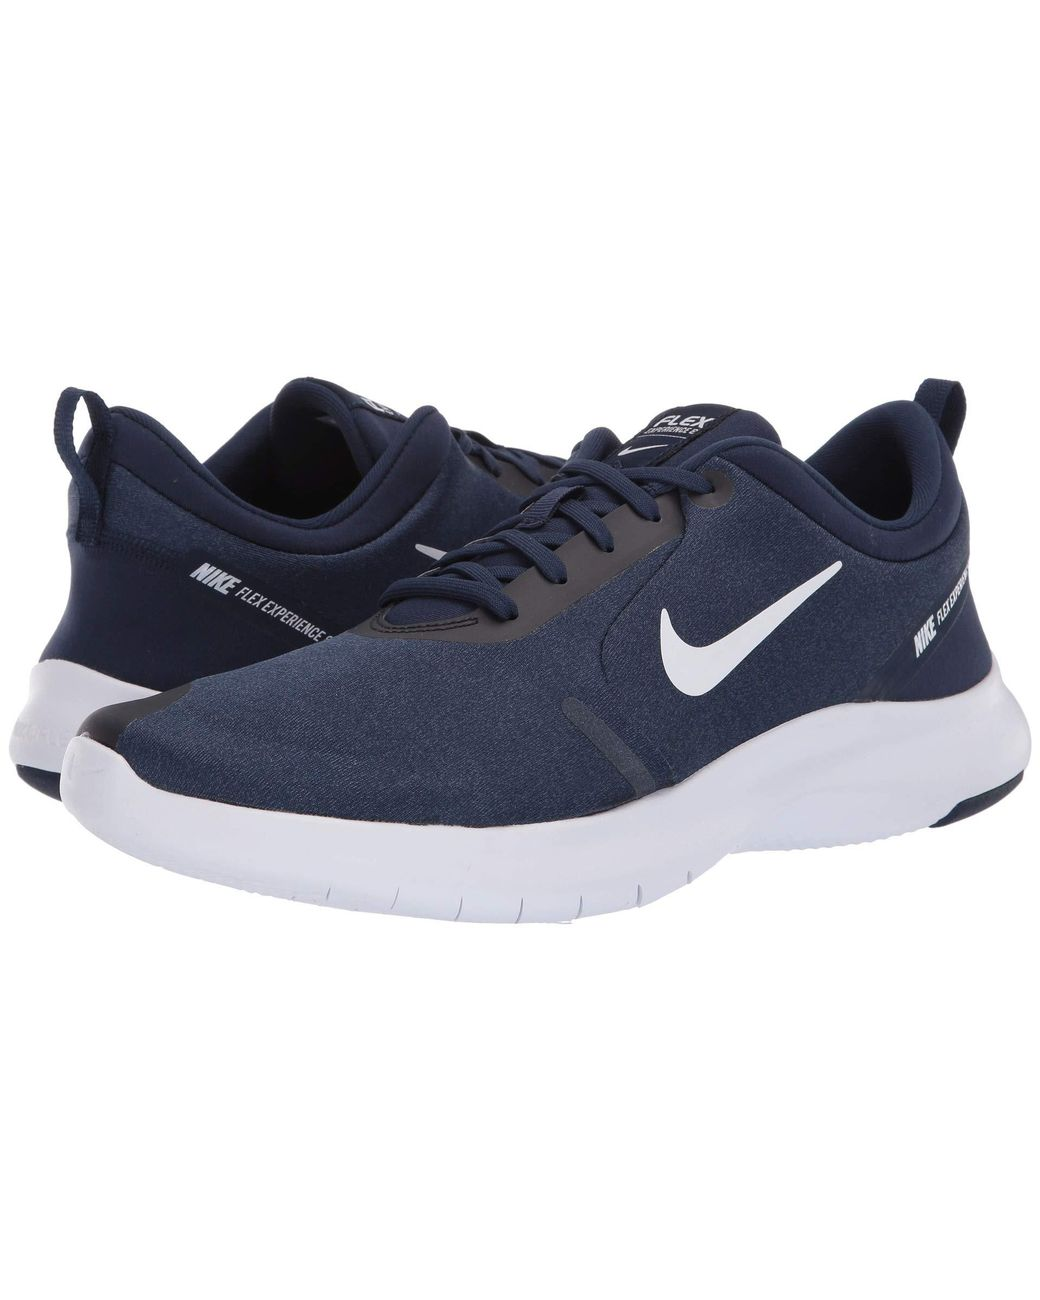 51c1401a1a252 Lyst - Nike Flex Experience Rn 8 (midnight Navy white monsoon Blue) Men s  Running Shoes in Blue for Men - Save 2%